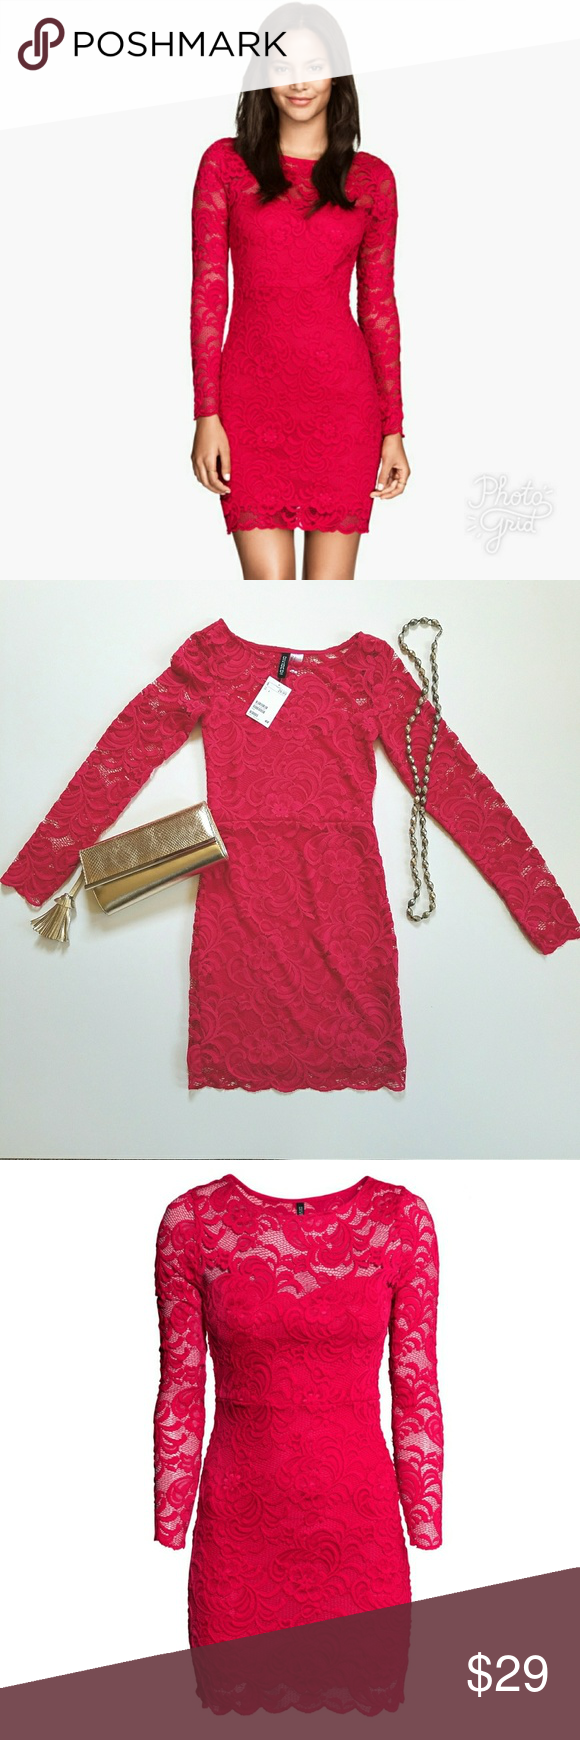 Nwt H M Red Lace Dress Long Sleeve Red Lace Long Sleeve Dress Red Lace Dress Long Sleeve Lace Dress